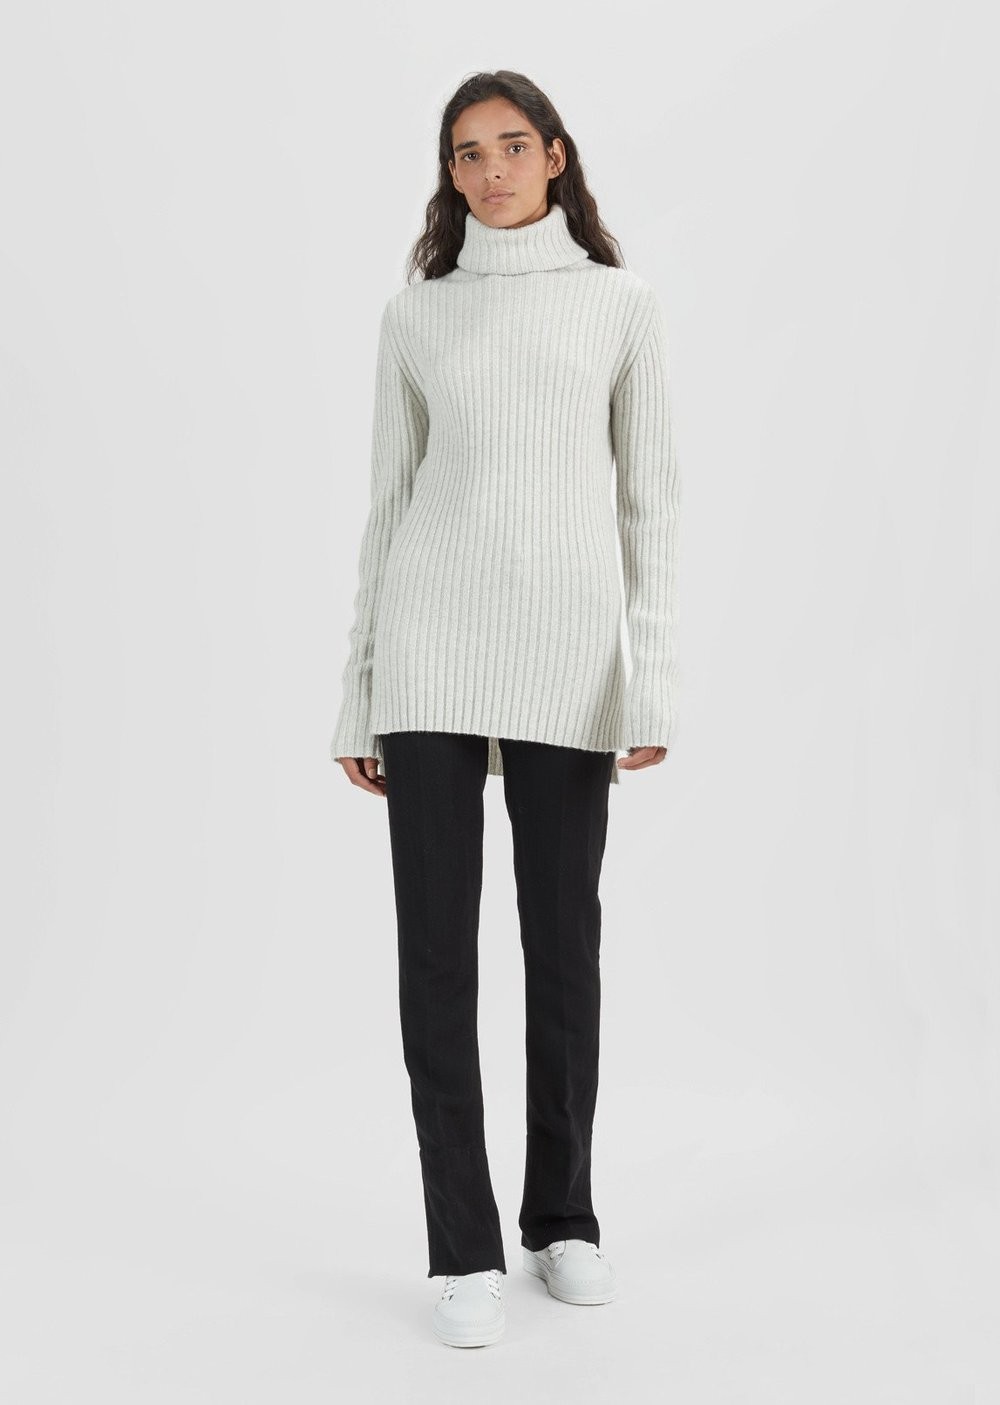 - WOOL CASHMERE RIBBED TURTLENECK SWEATER /Ann Demeulemeester $760